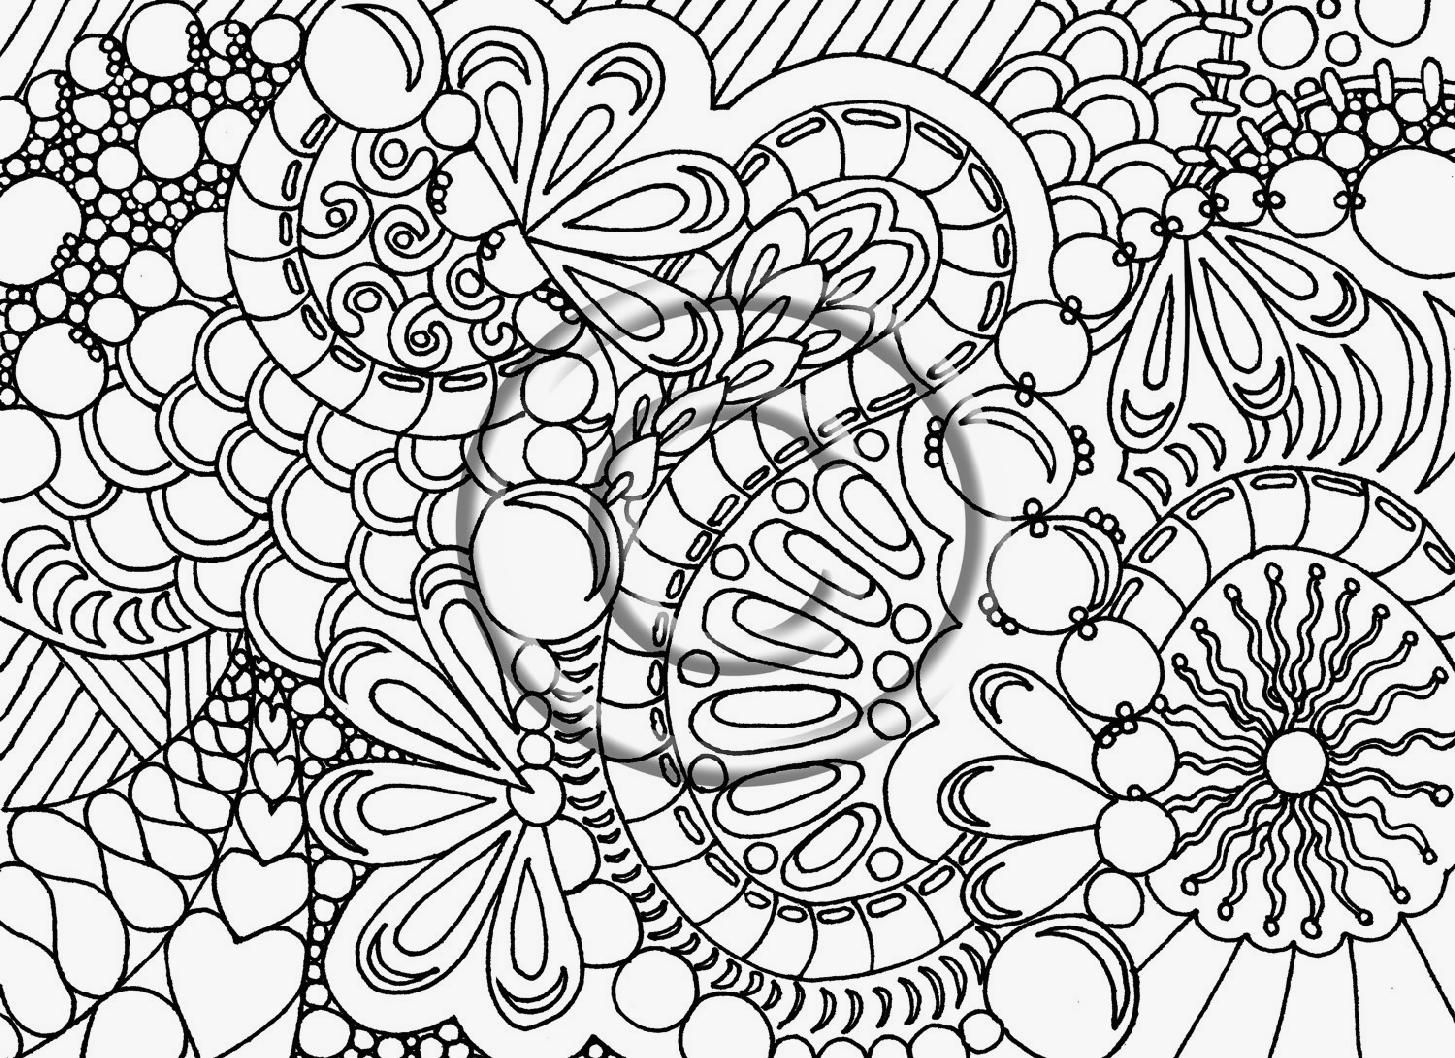 coloring templates for adults hard coloring pages for adults best coloring pages for kids coloring adults for templates